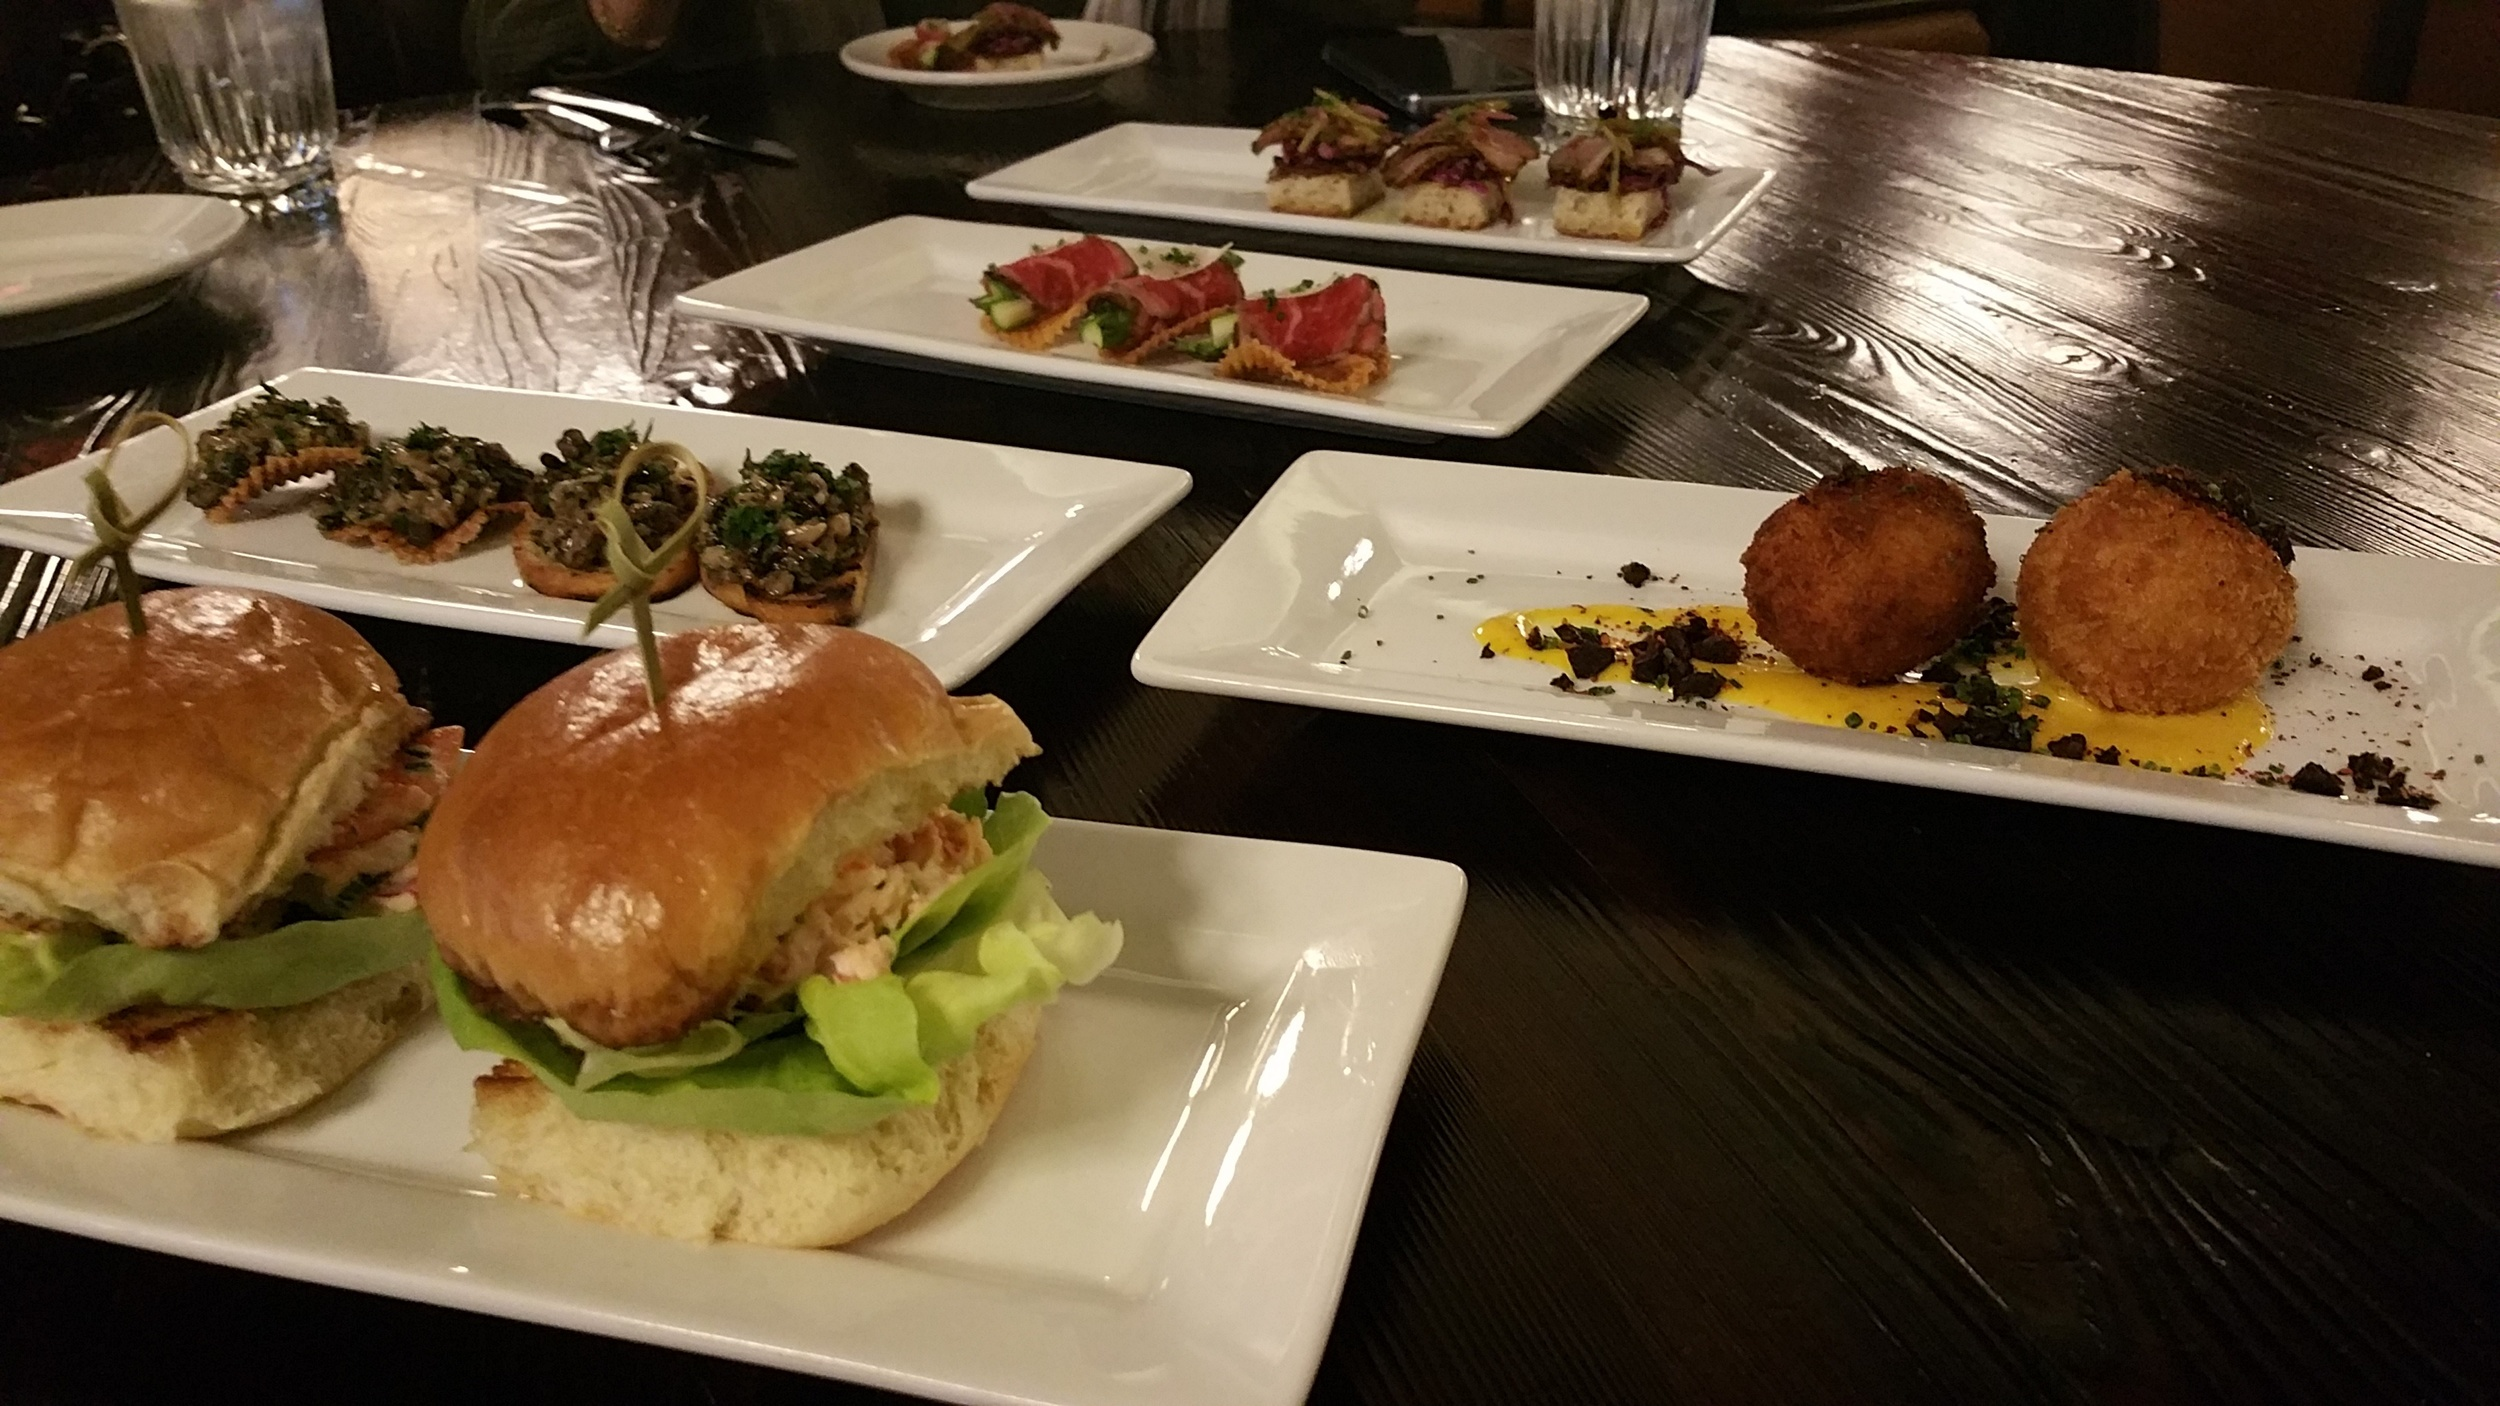 Ready to book your private event?Tasting menus available.